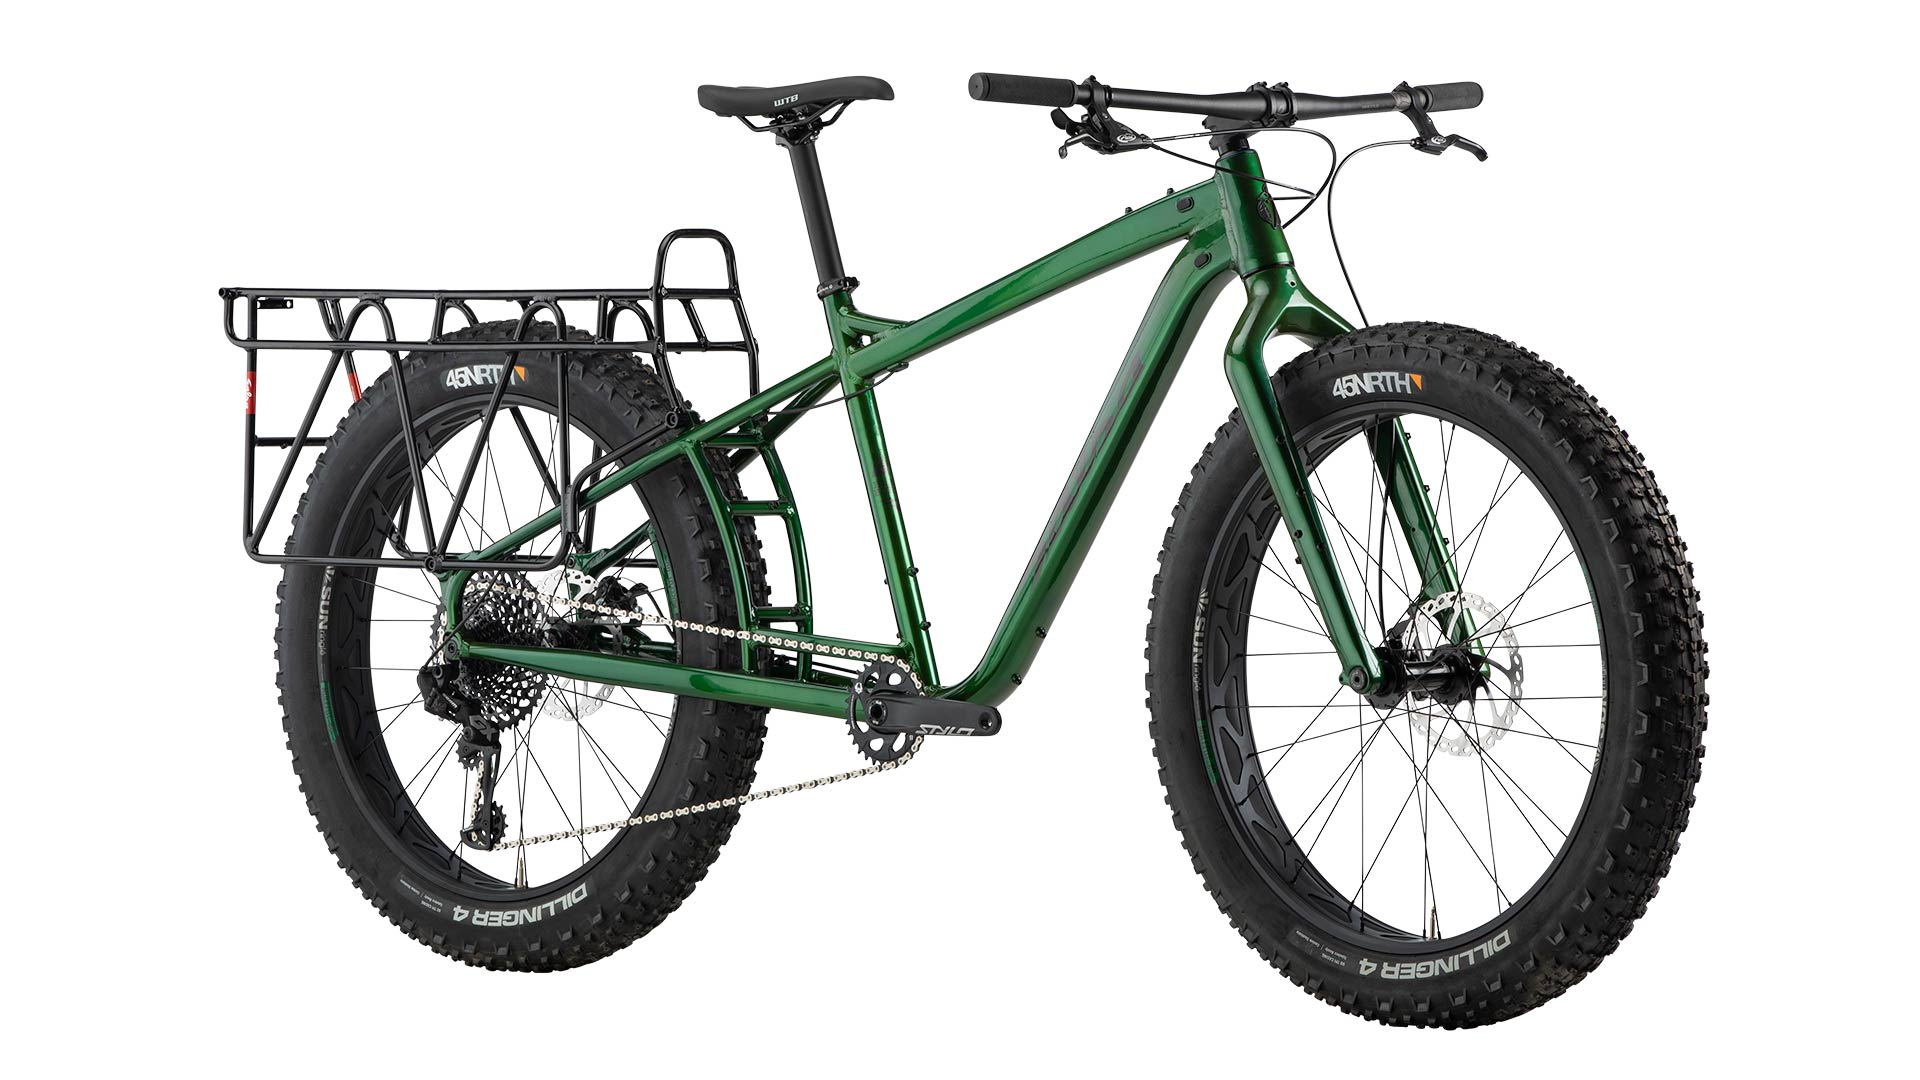 Salsa 2020 Blackborrow GX Eagle in Green